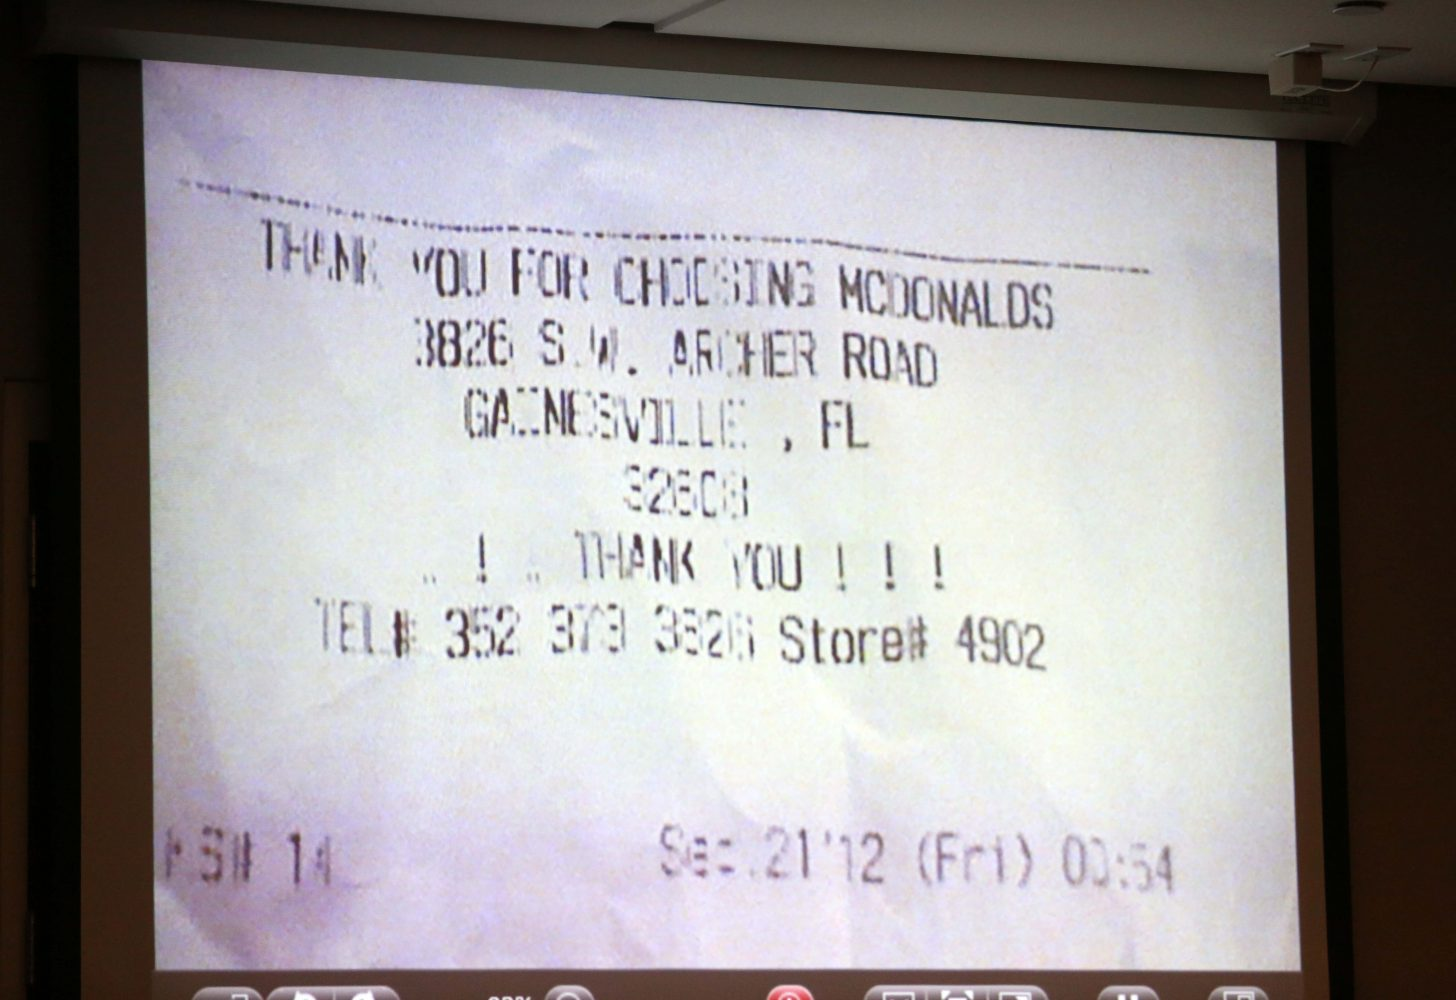 A receipt from a local McDonald's that Pedro Bravo went to early Friday morning on September 21, 2012 during the disappearance of friend Christian Aguilar is shown during Bravo's murder trial in courtroom 1B of the Alachua County Criminal Justice Center Wednesday, August 6, 2014.  Bravo is accused of killing the University of Florida student.  (Doug Finger/The Gainesville Sun/Pool)